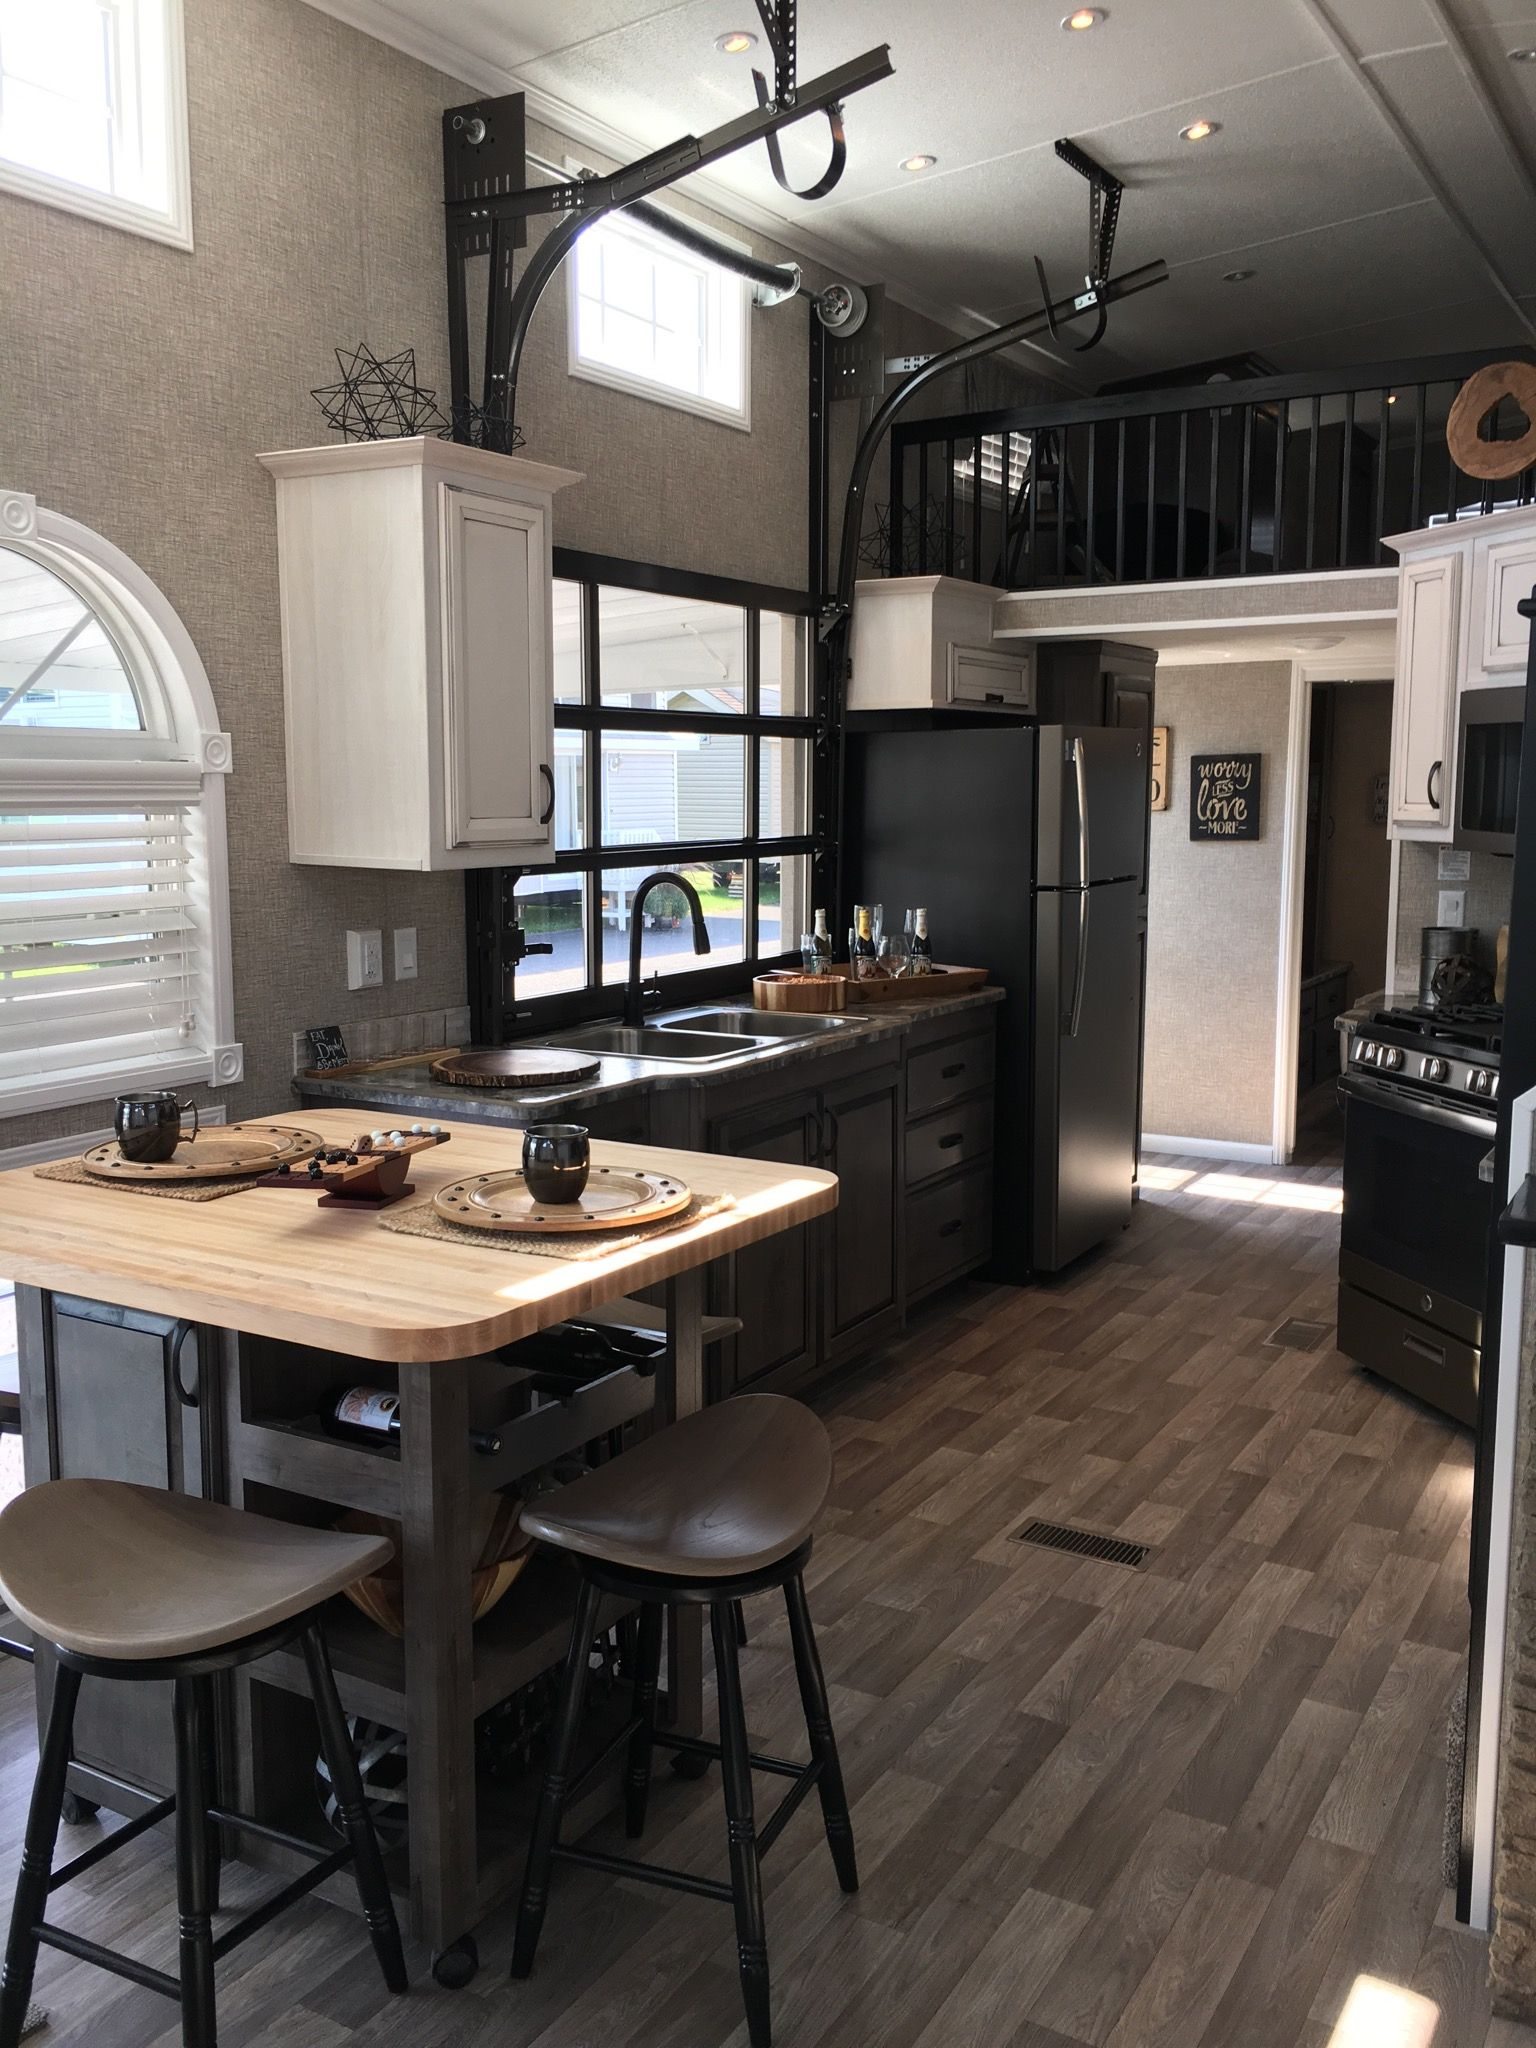 Model Homes Images Interior Kropf Island Park Model Tiny Homes Pinte